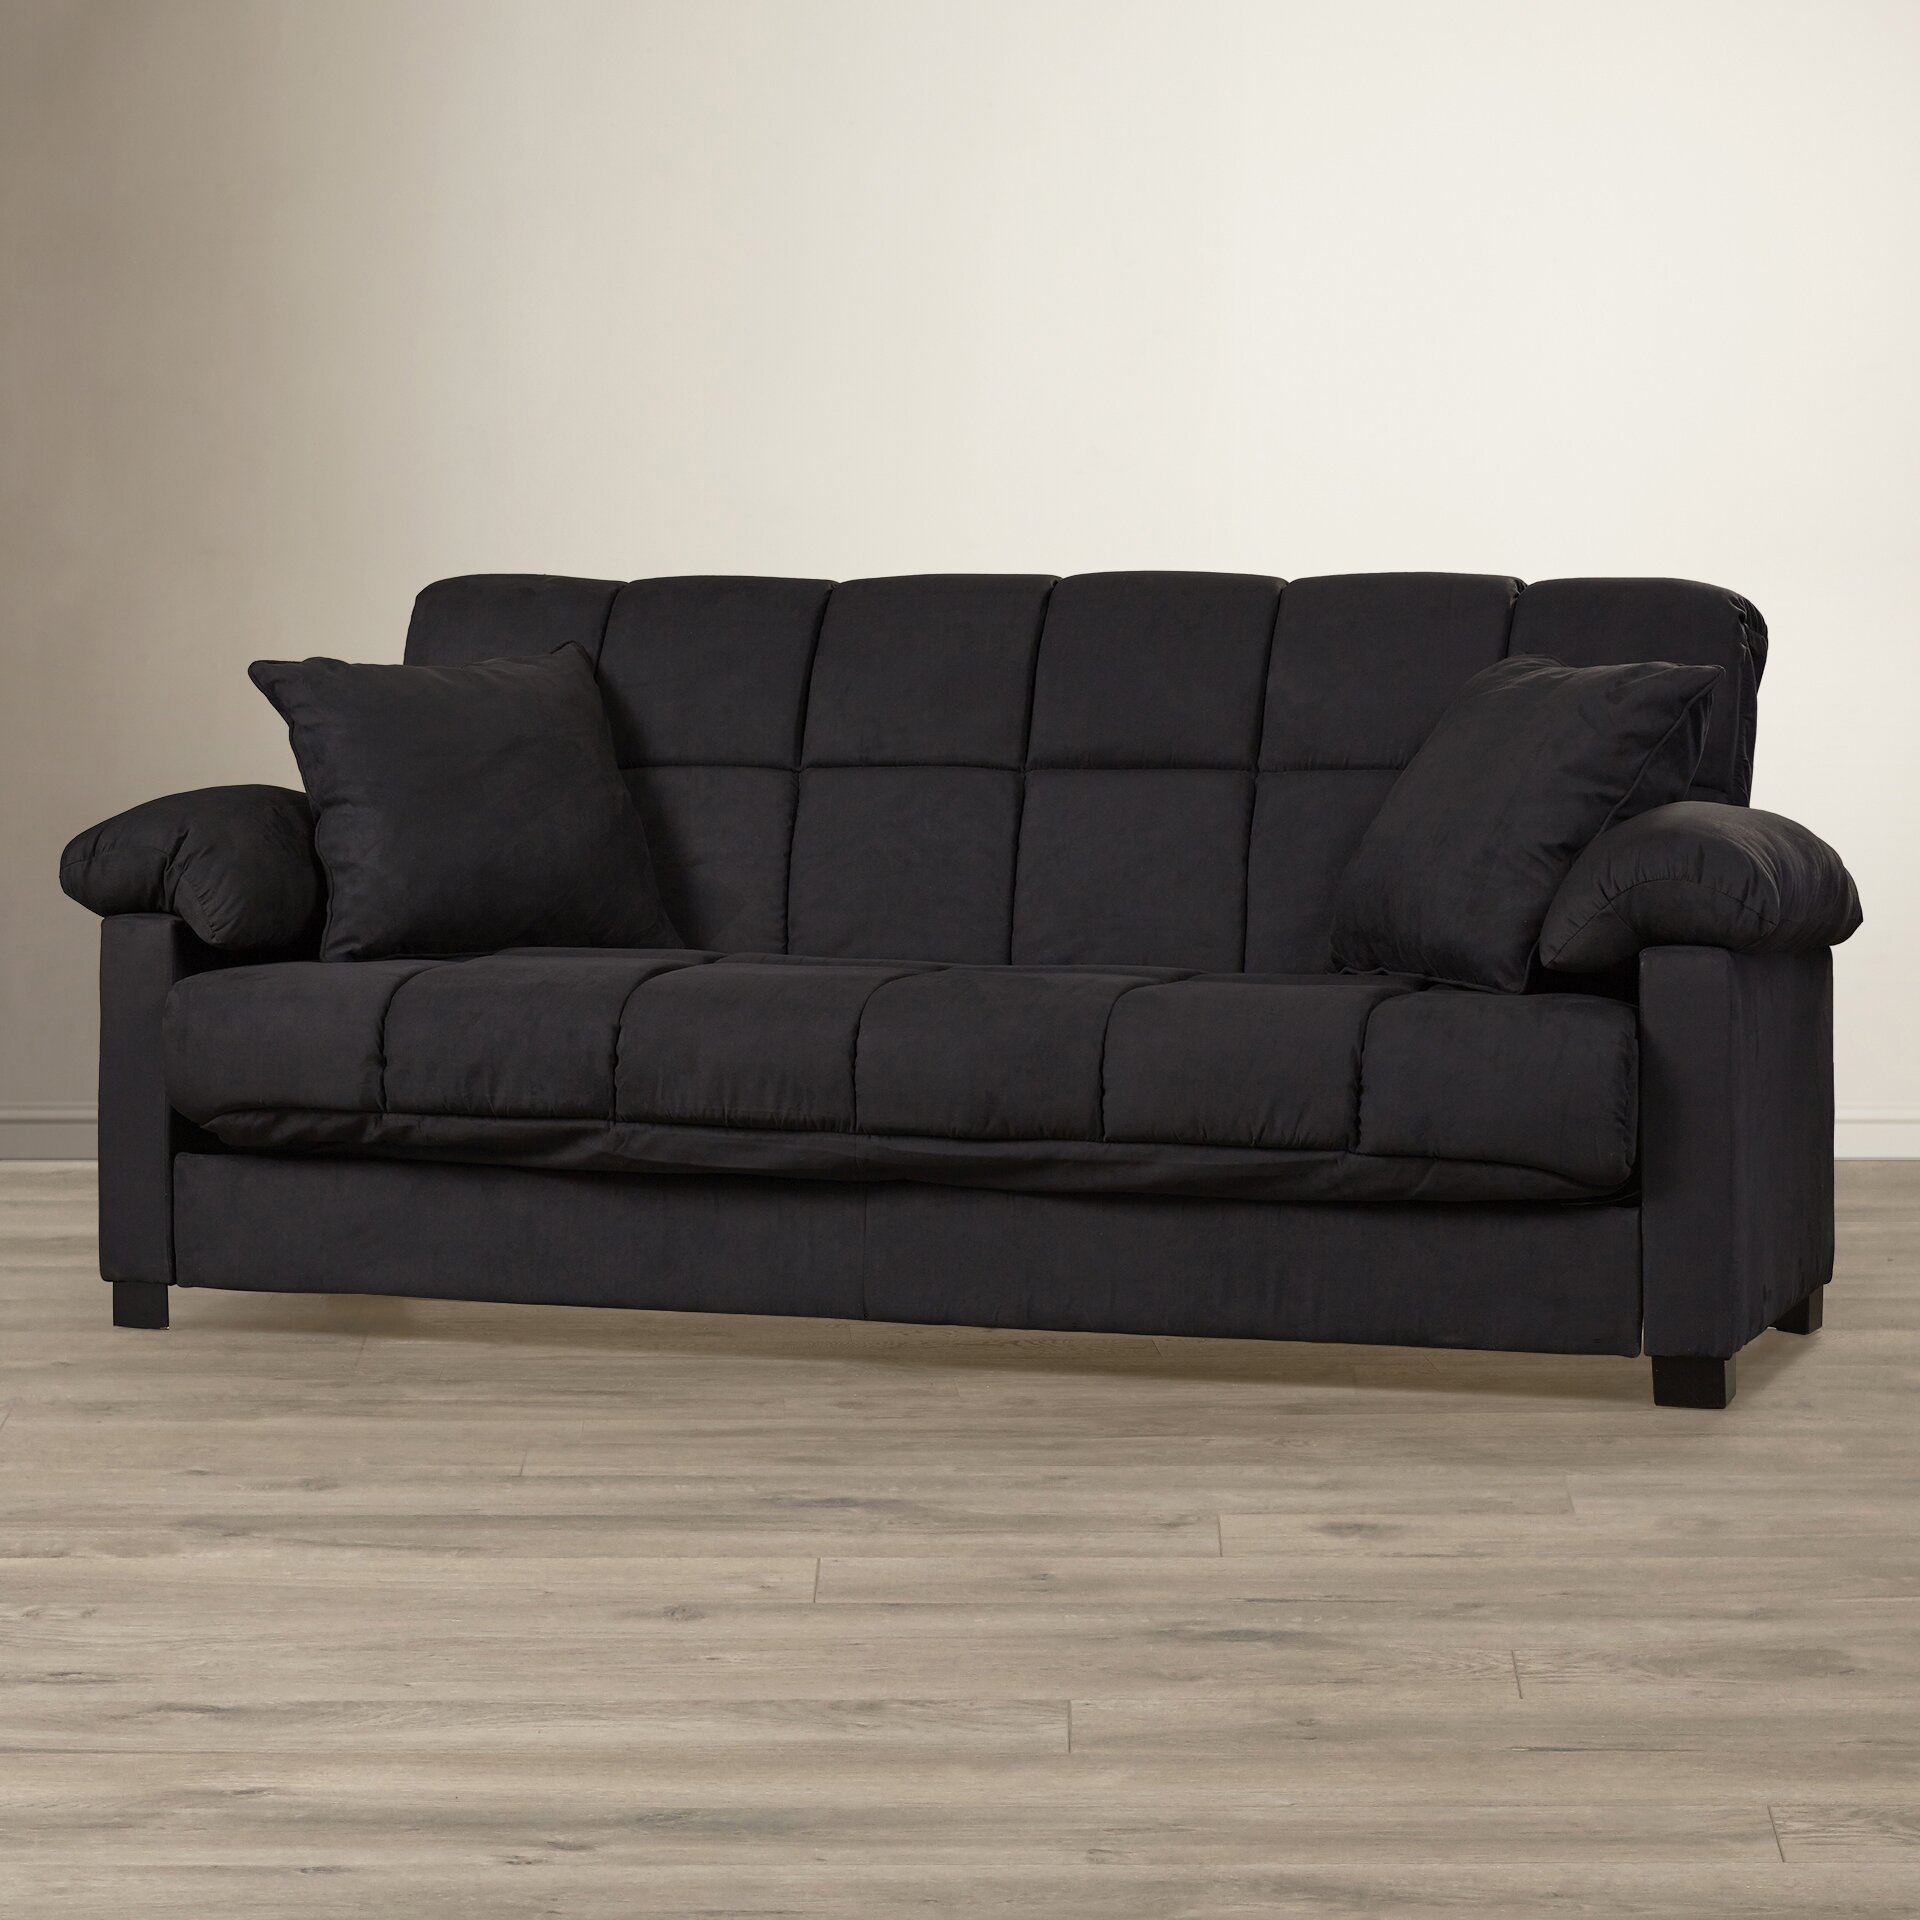 QUICK VIEW  Minter Upholstered Sleeper Sofa. Sofa Beds   Sleeper Sofas You ll Love